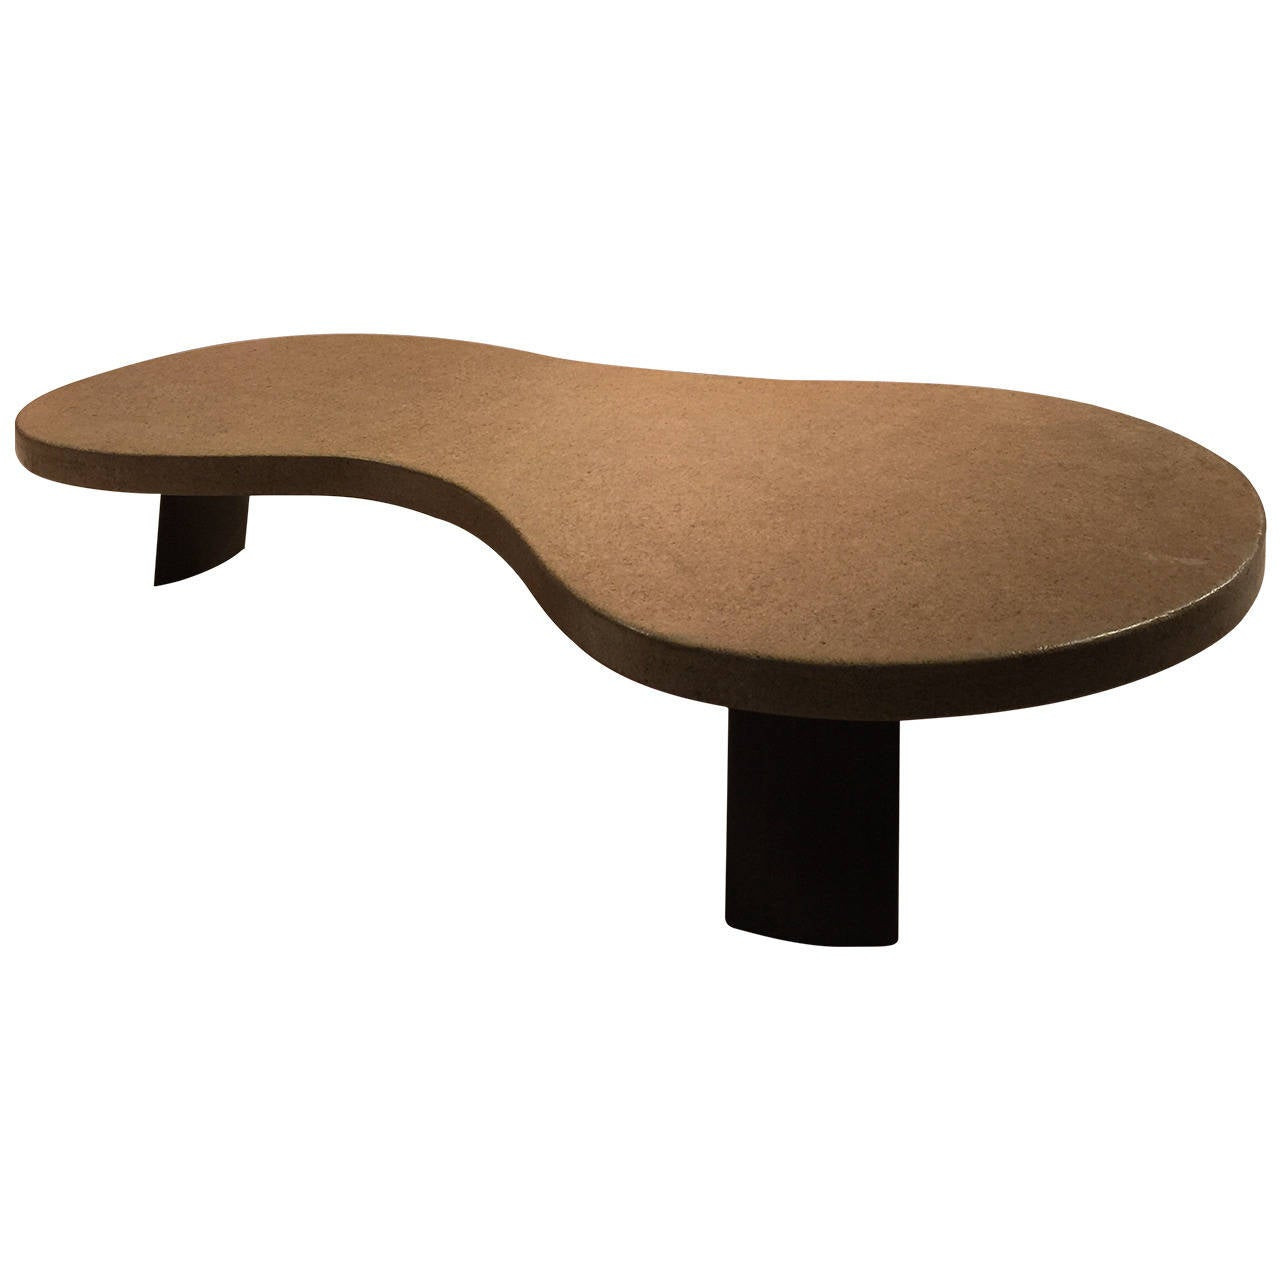 Cork and mahogany coffee table by paul frankl circa 1953 for sale cork and mahogany coffee table by paul frankl circa 1953 1 geotapseo Gallery